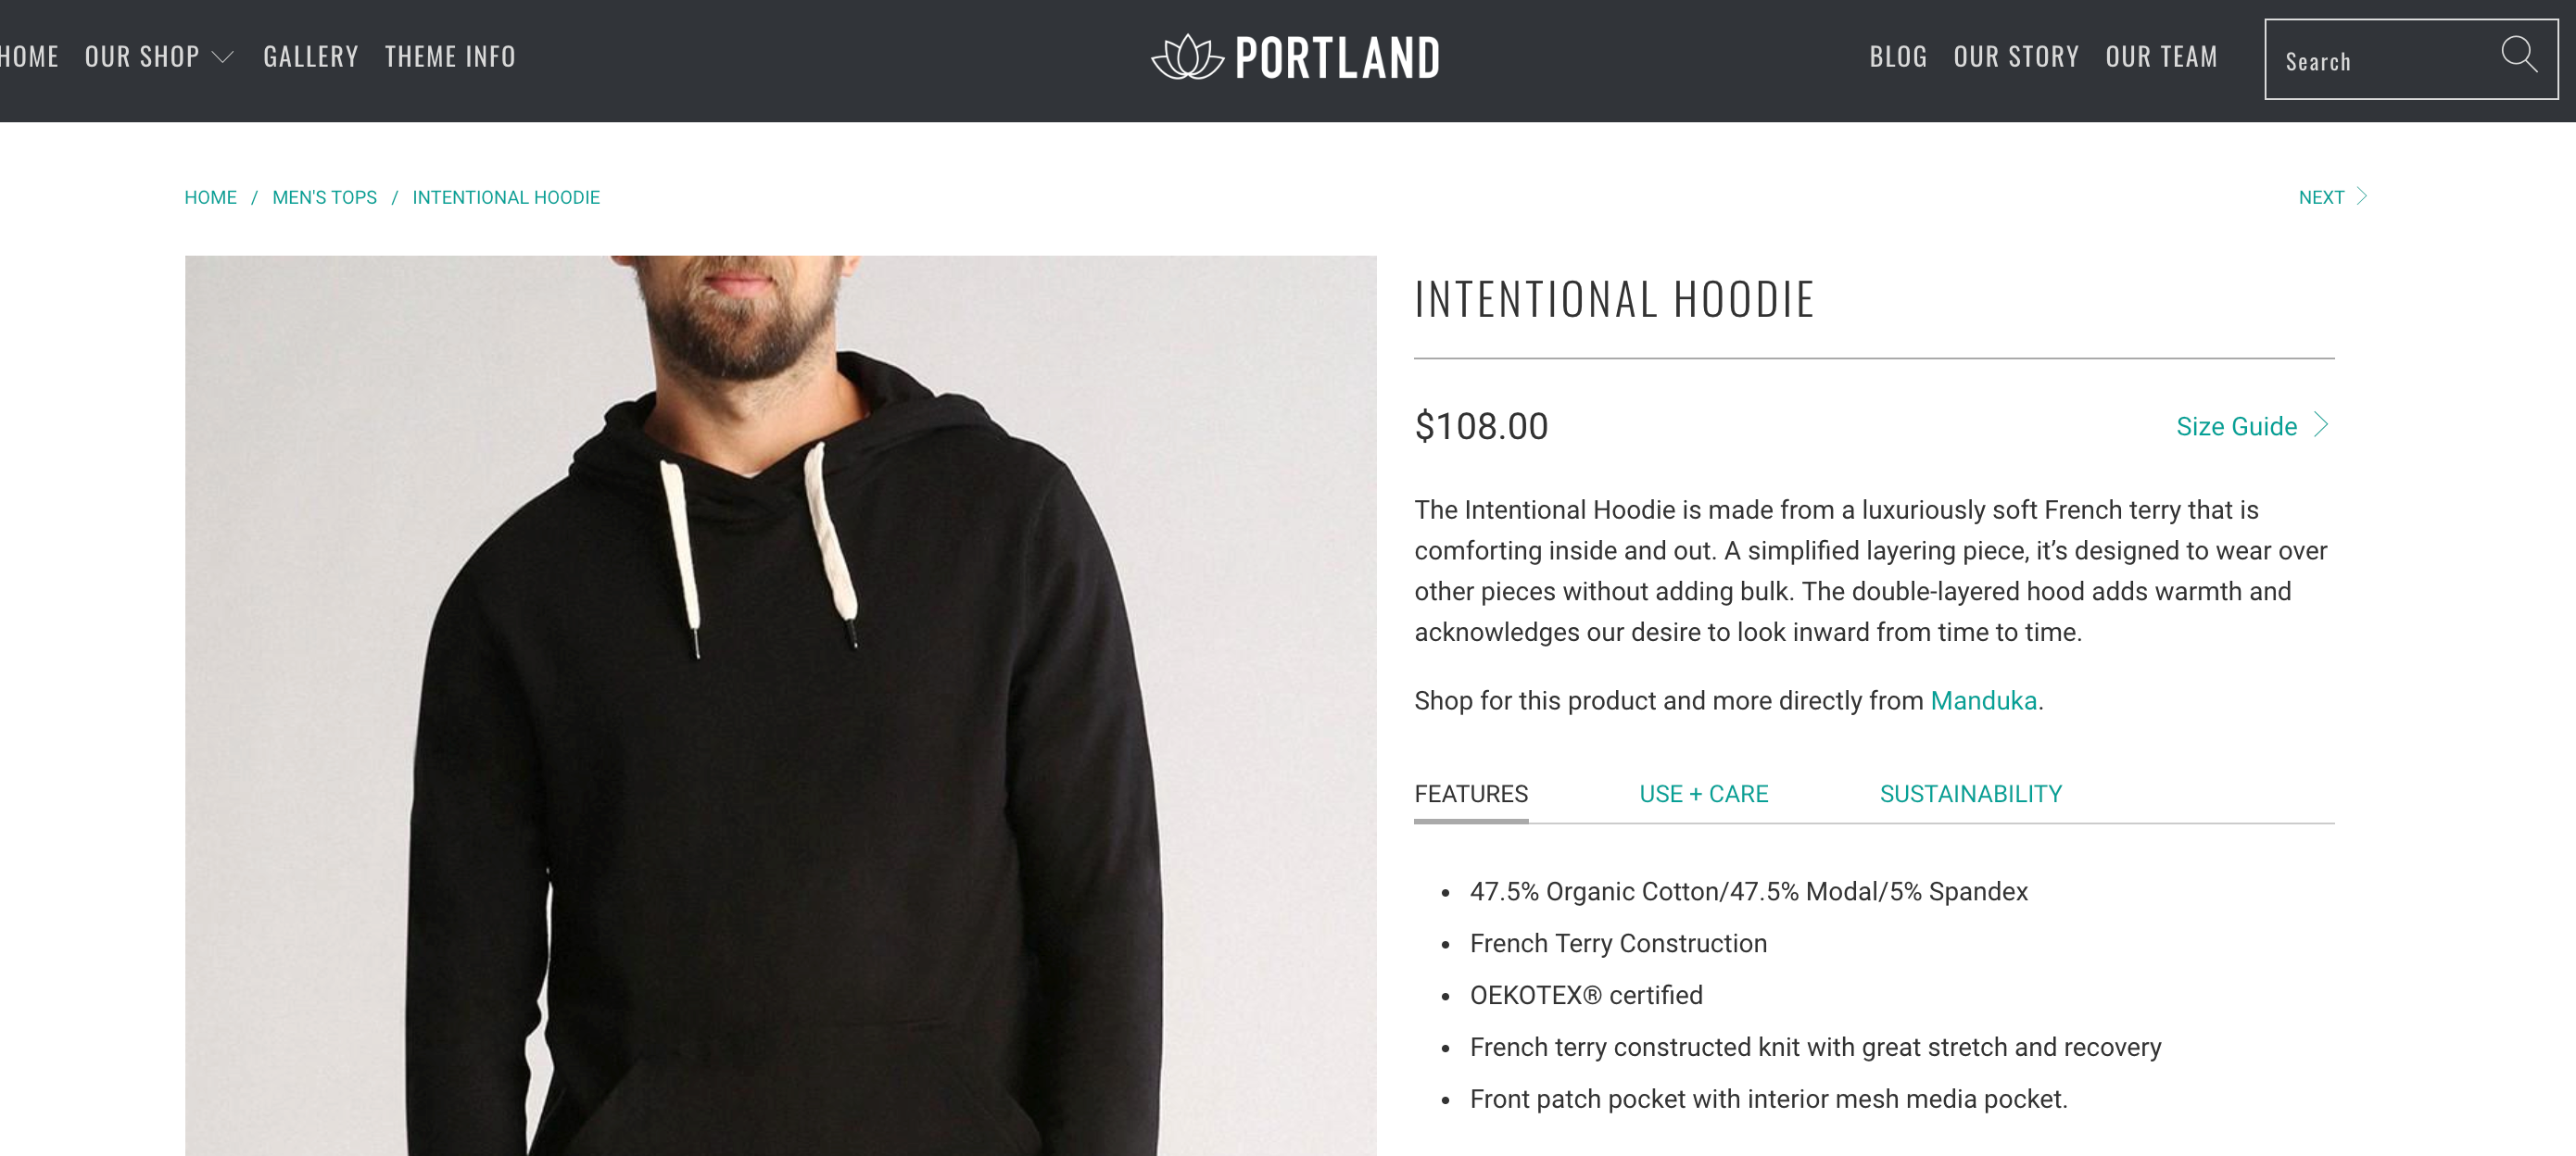 product-page-description-portland.png